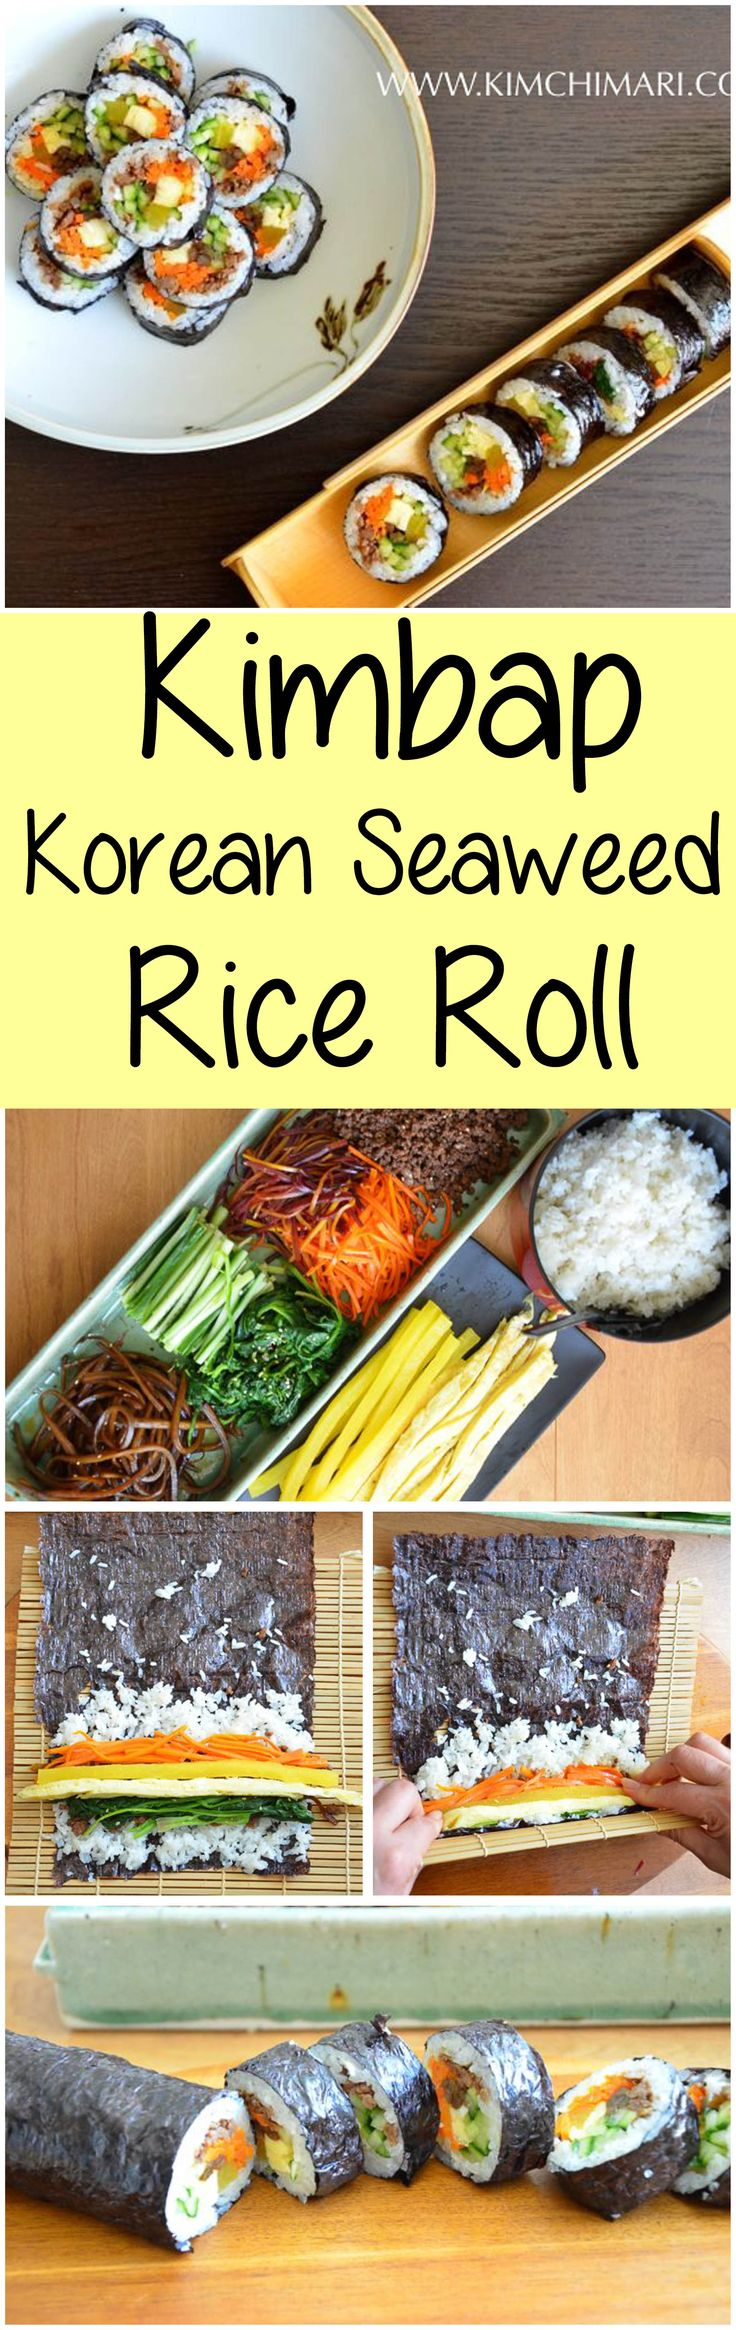 Kimbap is made by rolling meat, vegetables and pickles in rice wrapped in dried seaweed sheets.  A favorite picnic and lunch dish in Korea made in many different choice of fillings. | Kimchimari.com